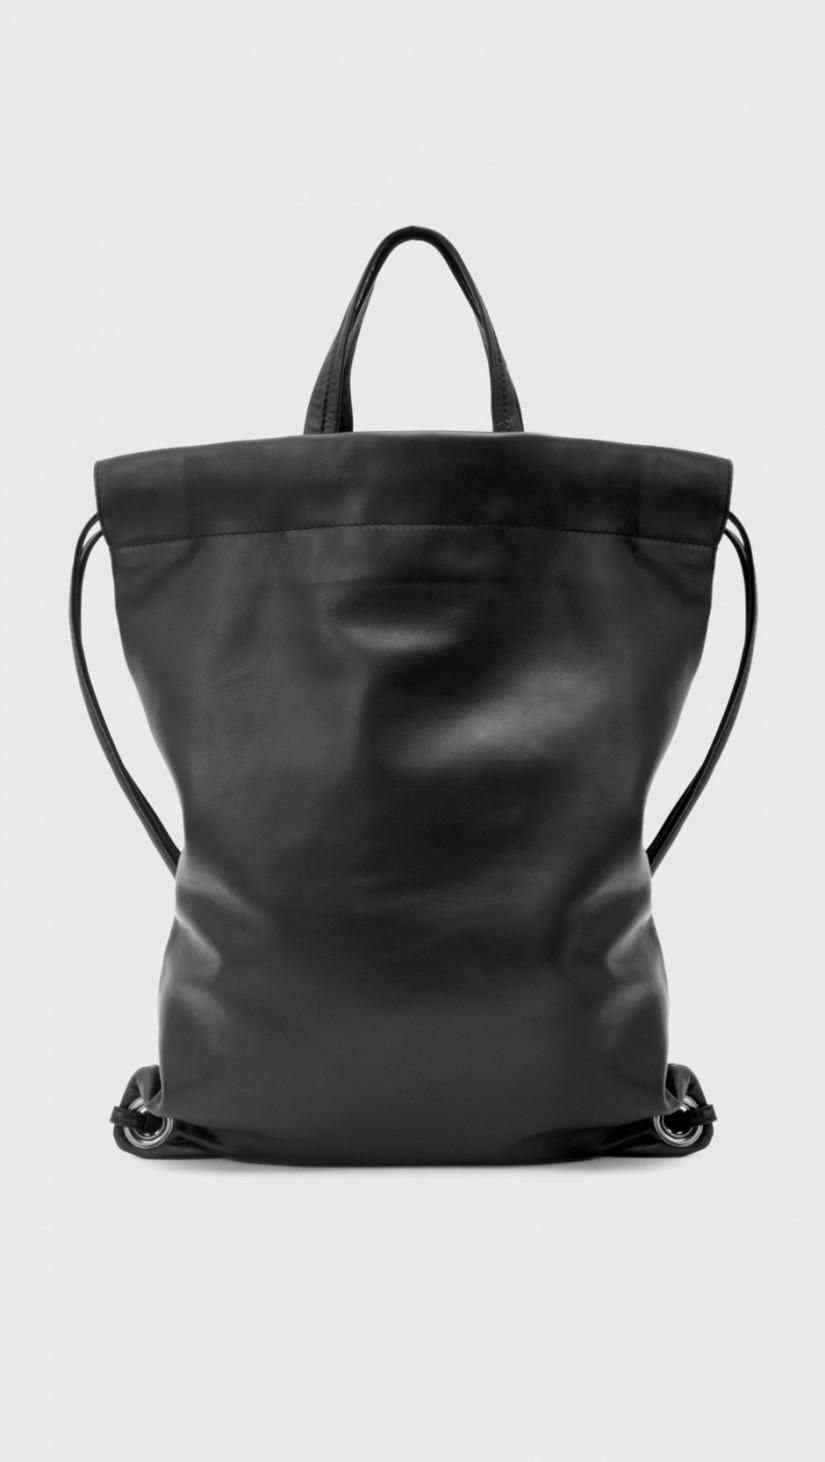 Robert Clergerie Sporty Changeable Sac In Black The Dreslyn